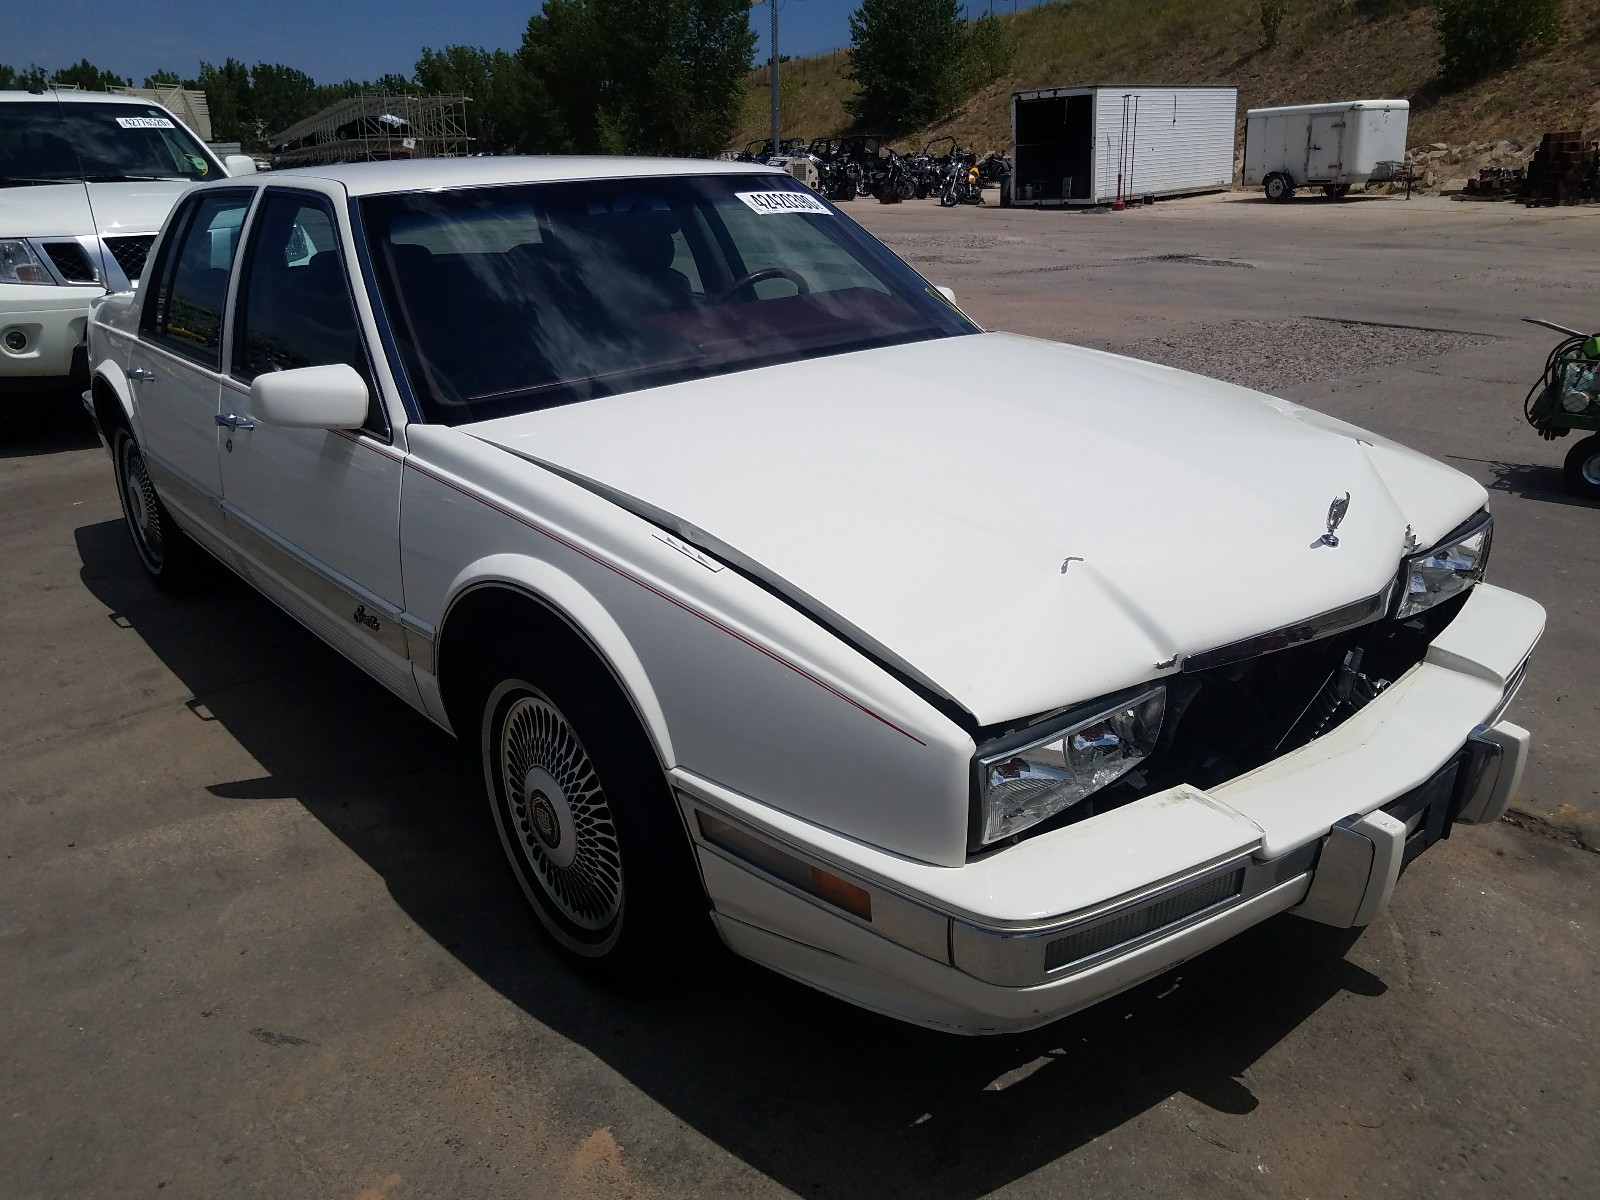 1991 cadillac seville for sale at copart littleton co lot 42420390 salvagereseller com 1991 cadillac seville for sale at